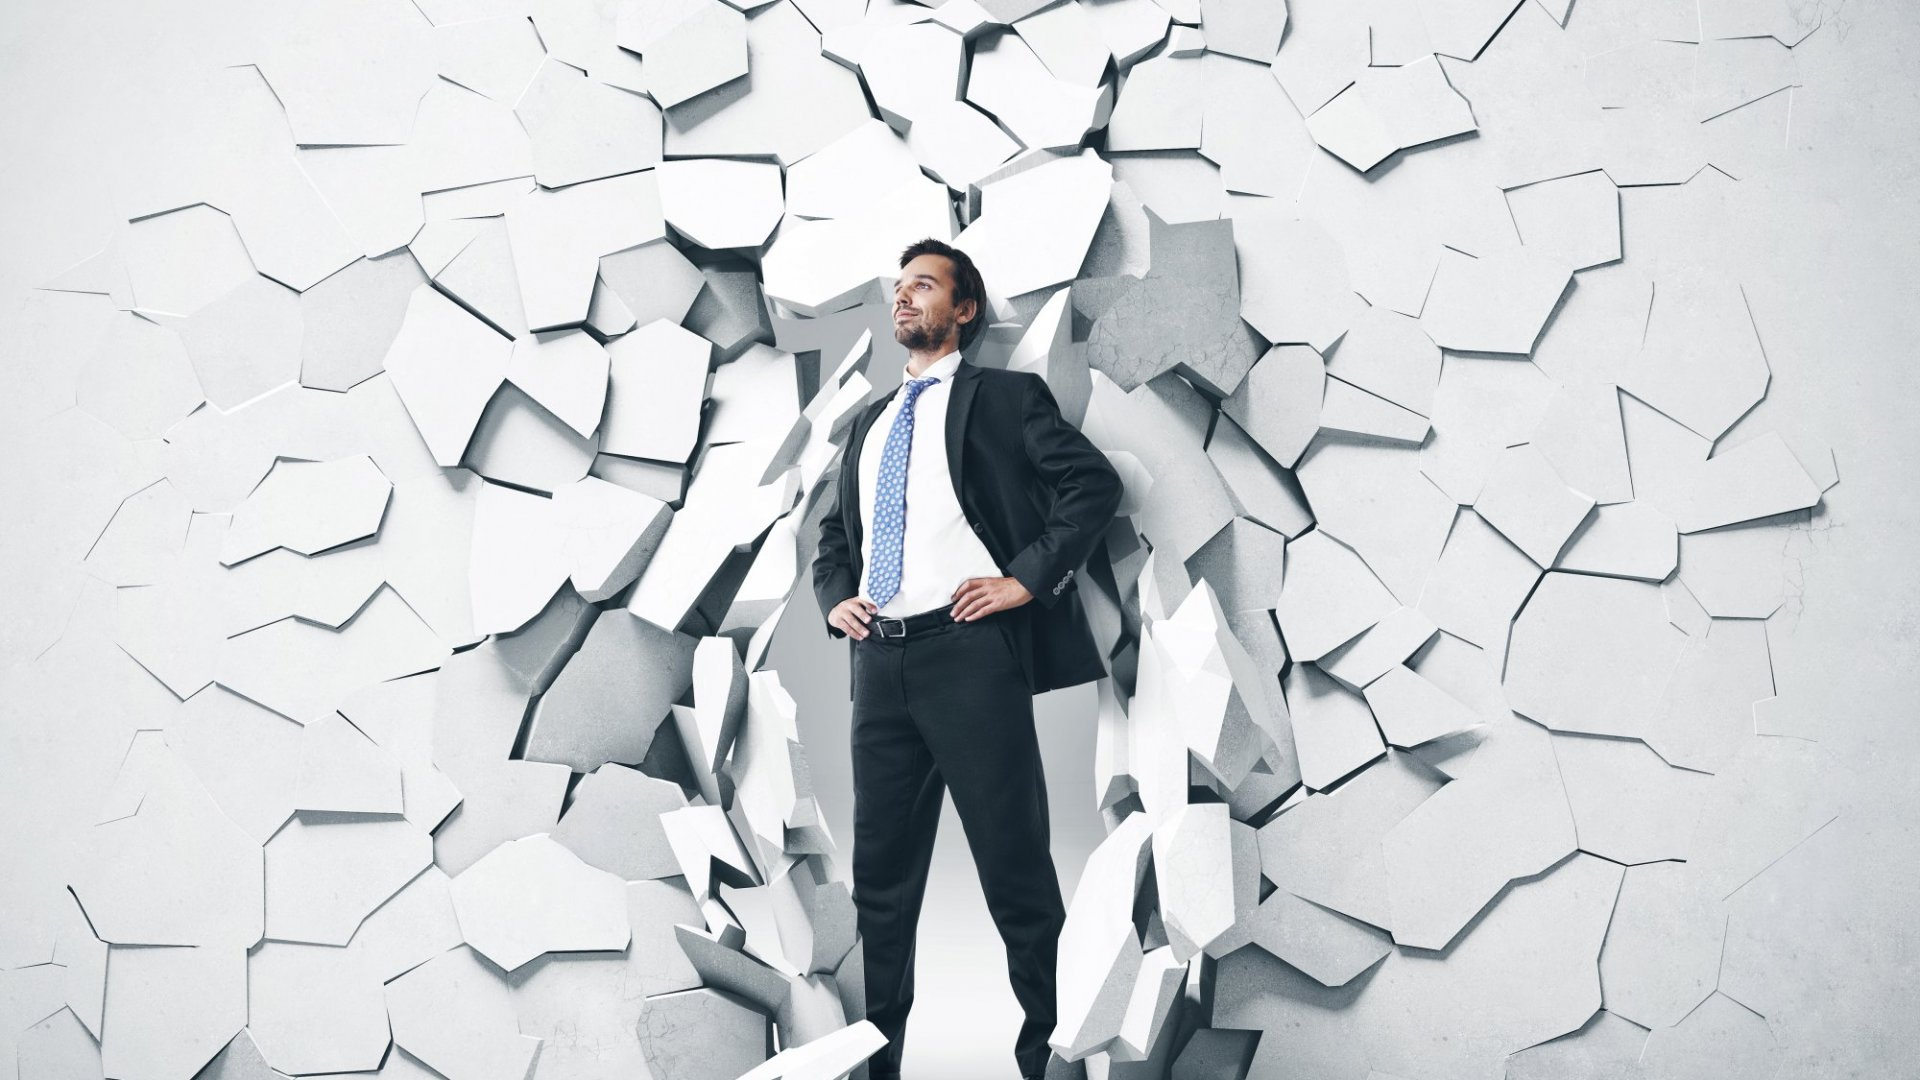 So You've Hit a Wall? Here's What These Top Leaders Would Do Next